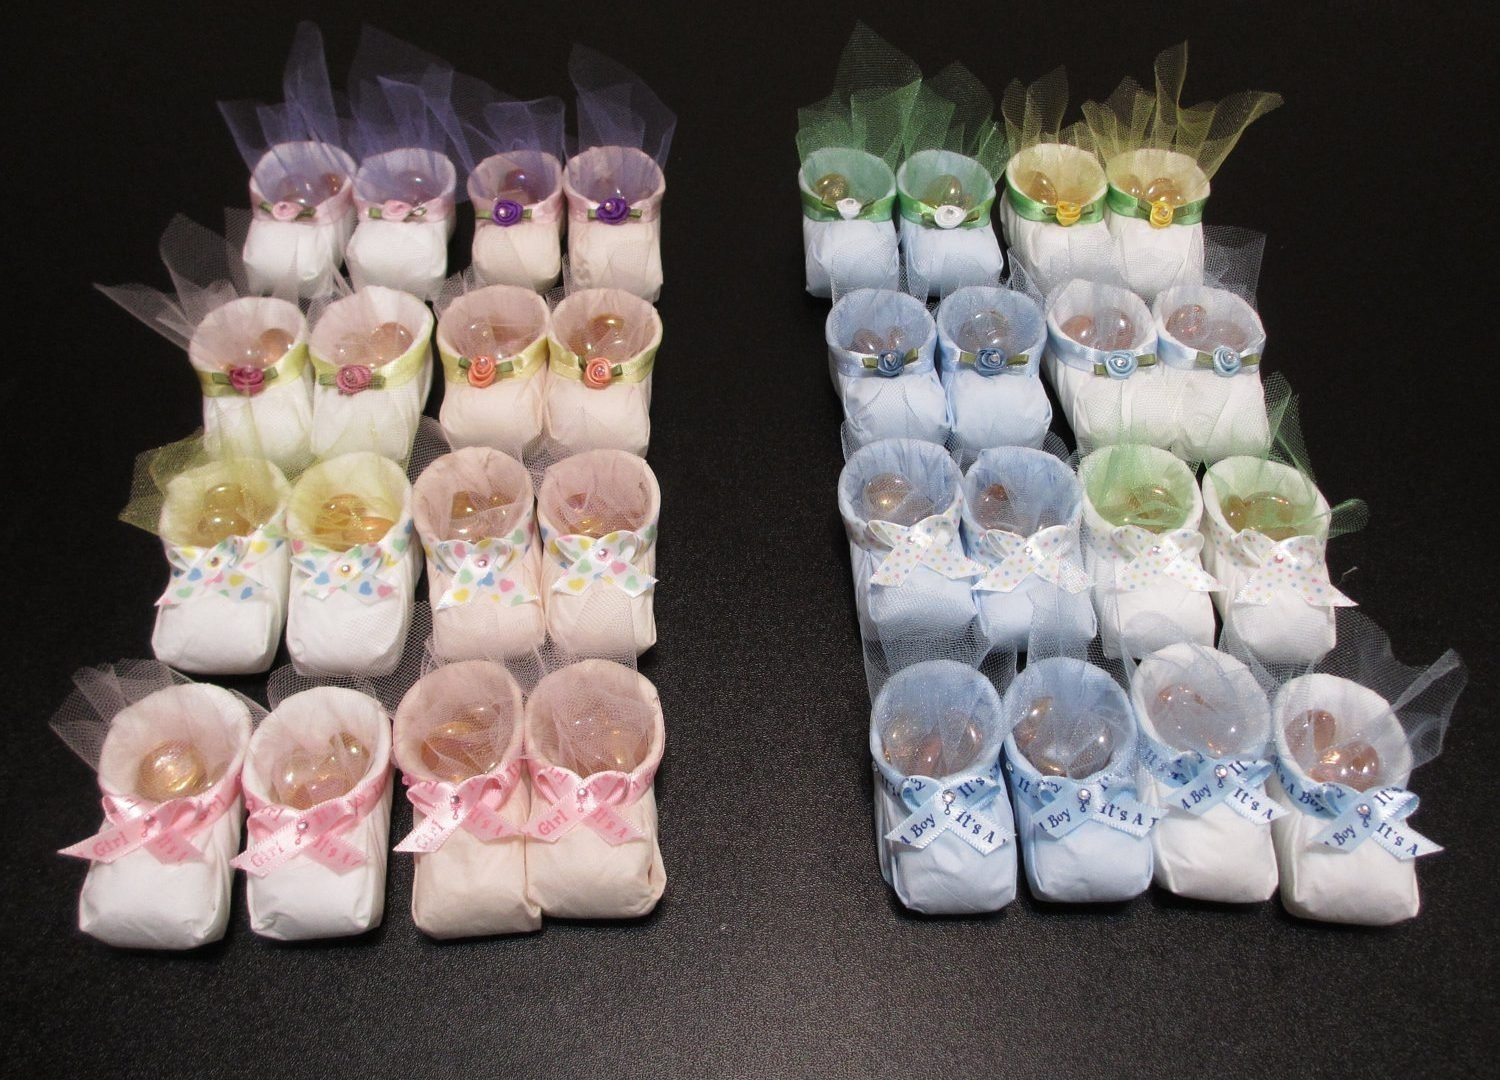 10 Nice Homemade Baby Shower Party Favor Ideas homemade baby shower partyors ideas easy making stupendous party